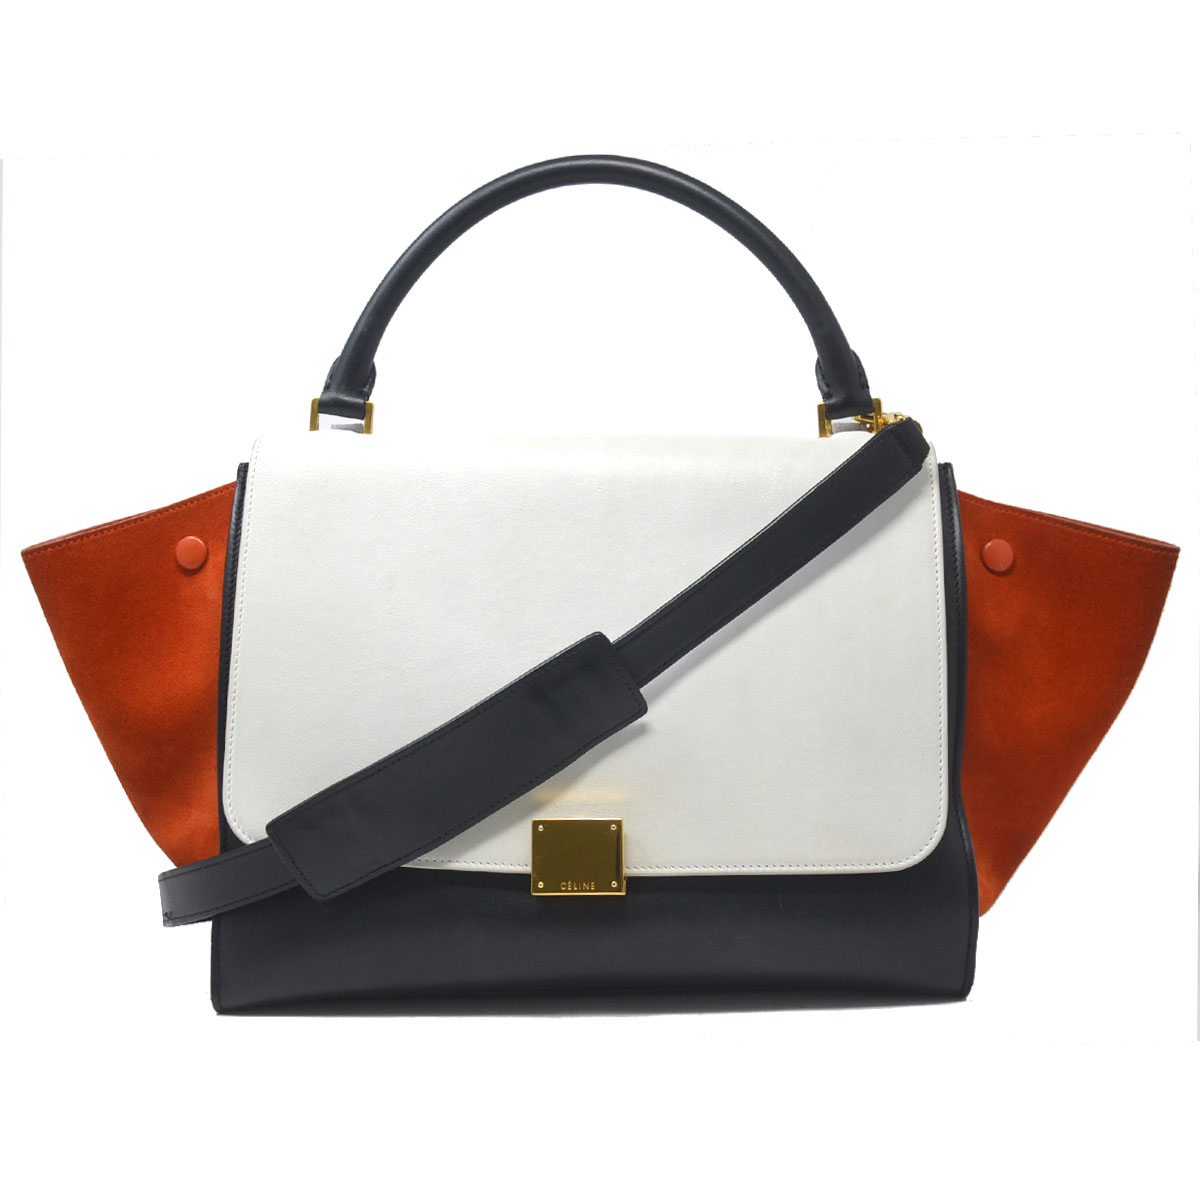 aa2a855f3ebc Yükle (600x265) · Celine Trapeze Medium Tri-Color Suede and Leather Handbag  For Sale at 1stdibs